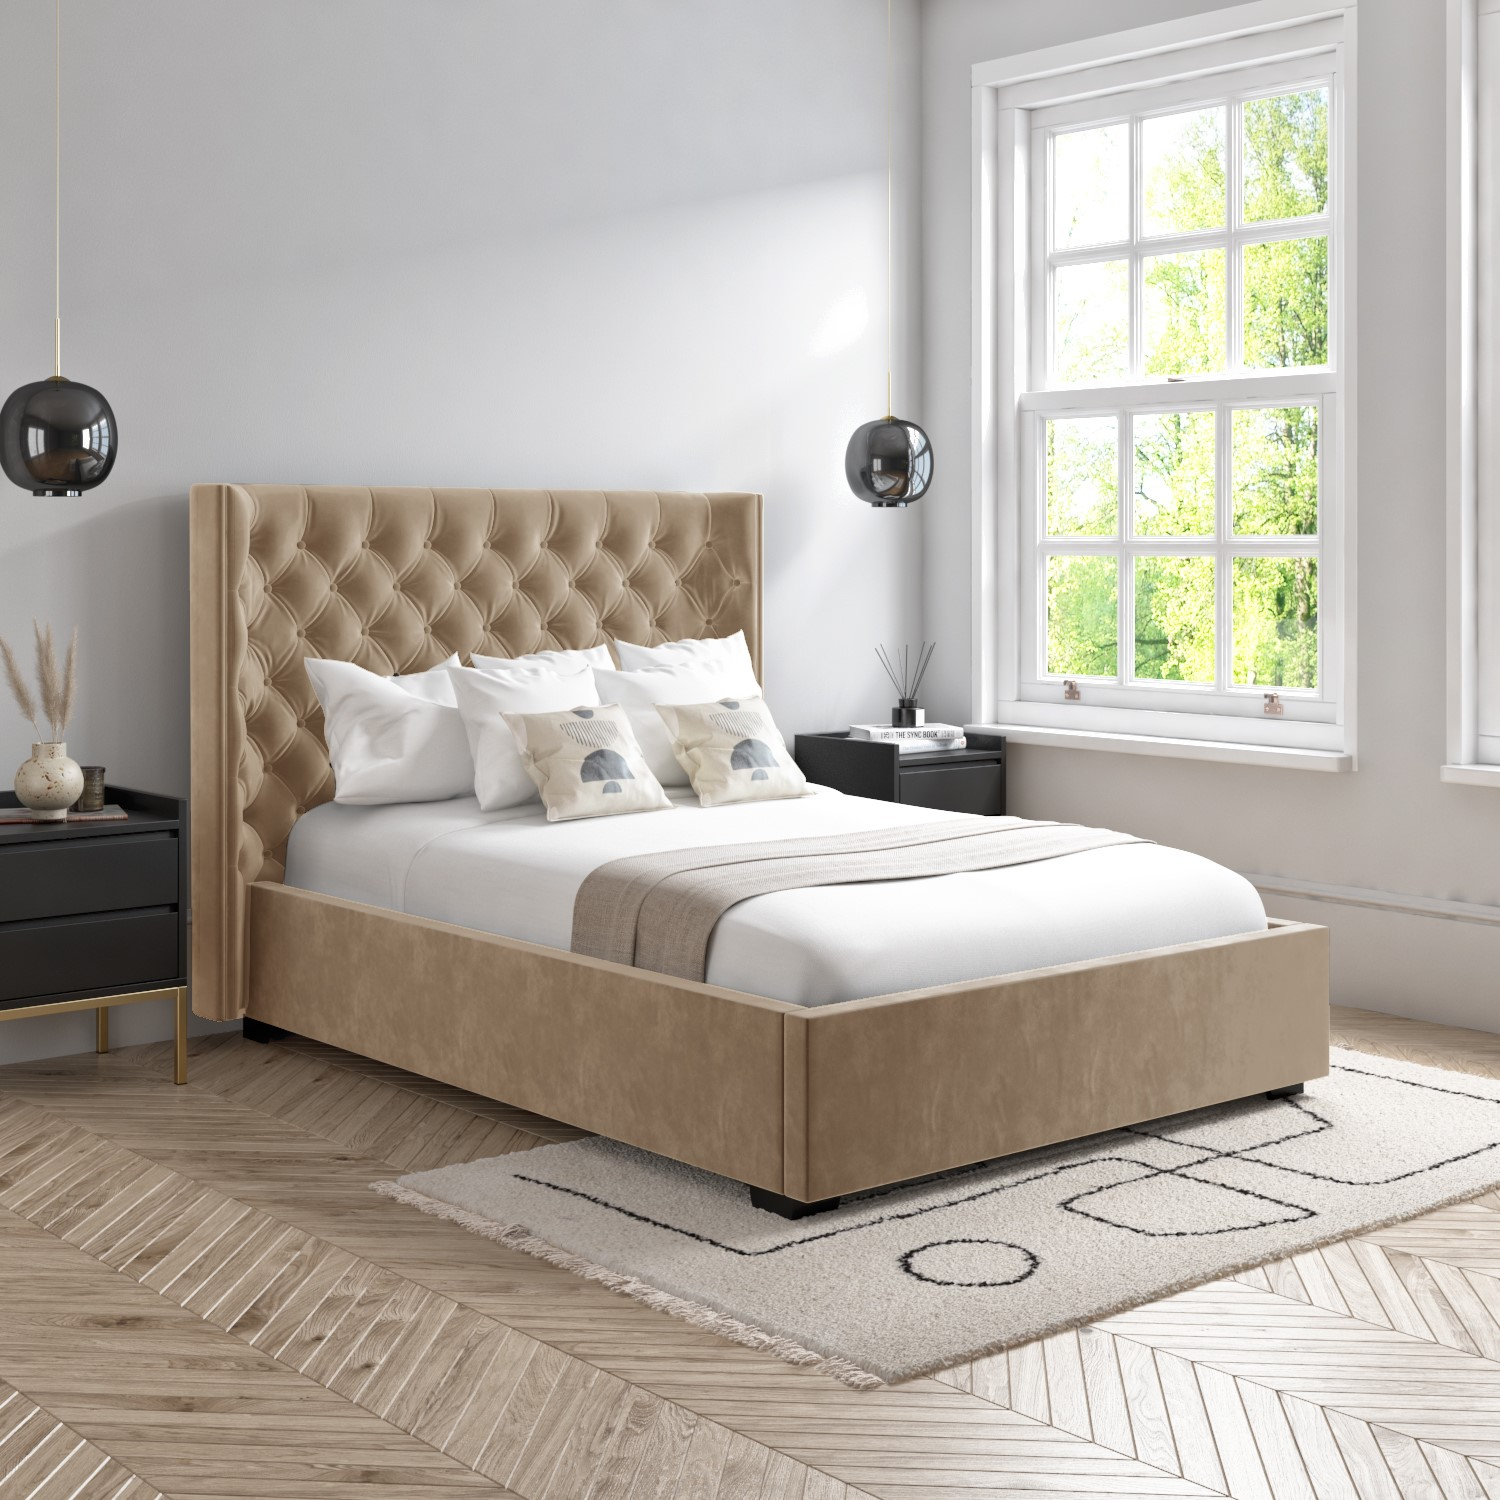 Milania King Size Ottoman Bed In Light Beige Velvet With Curved Headboard Furniture123